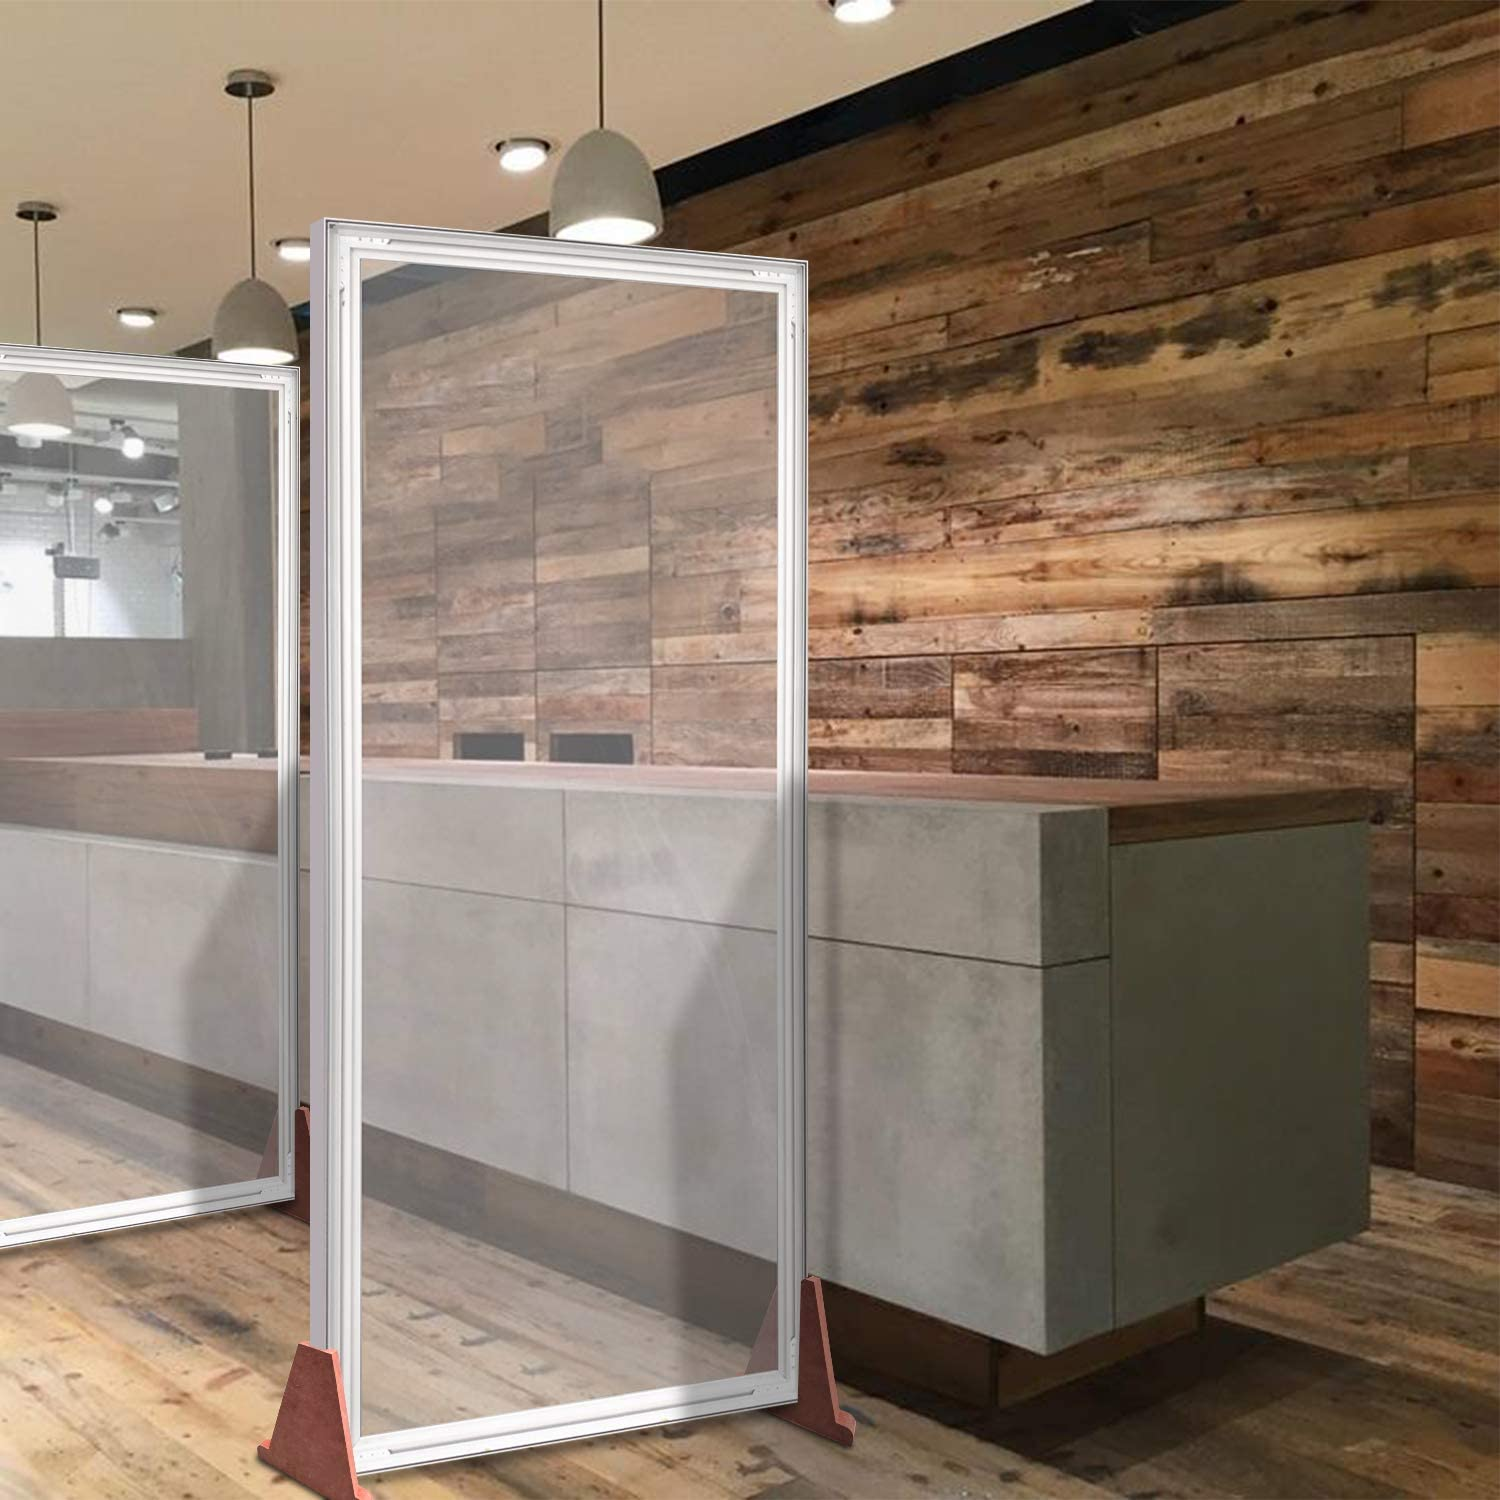 Floor Standing Sneeze Guard - Clear Vinyl with SEG Banner Stands Isolation Barrier - Protective Screen Shield for Office, Cafes, Retail Stores, Cashier, Receptionist (4 X 6.5 Ft)